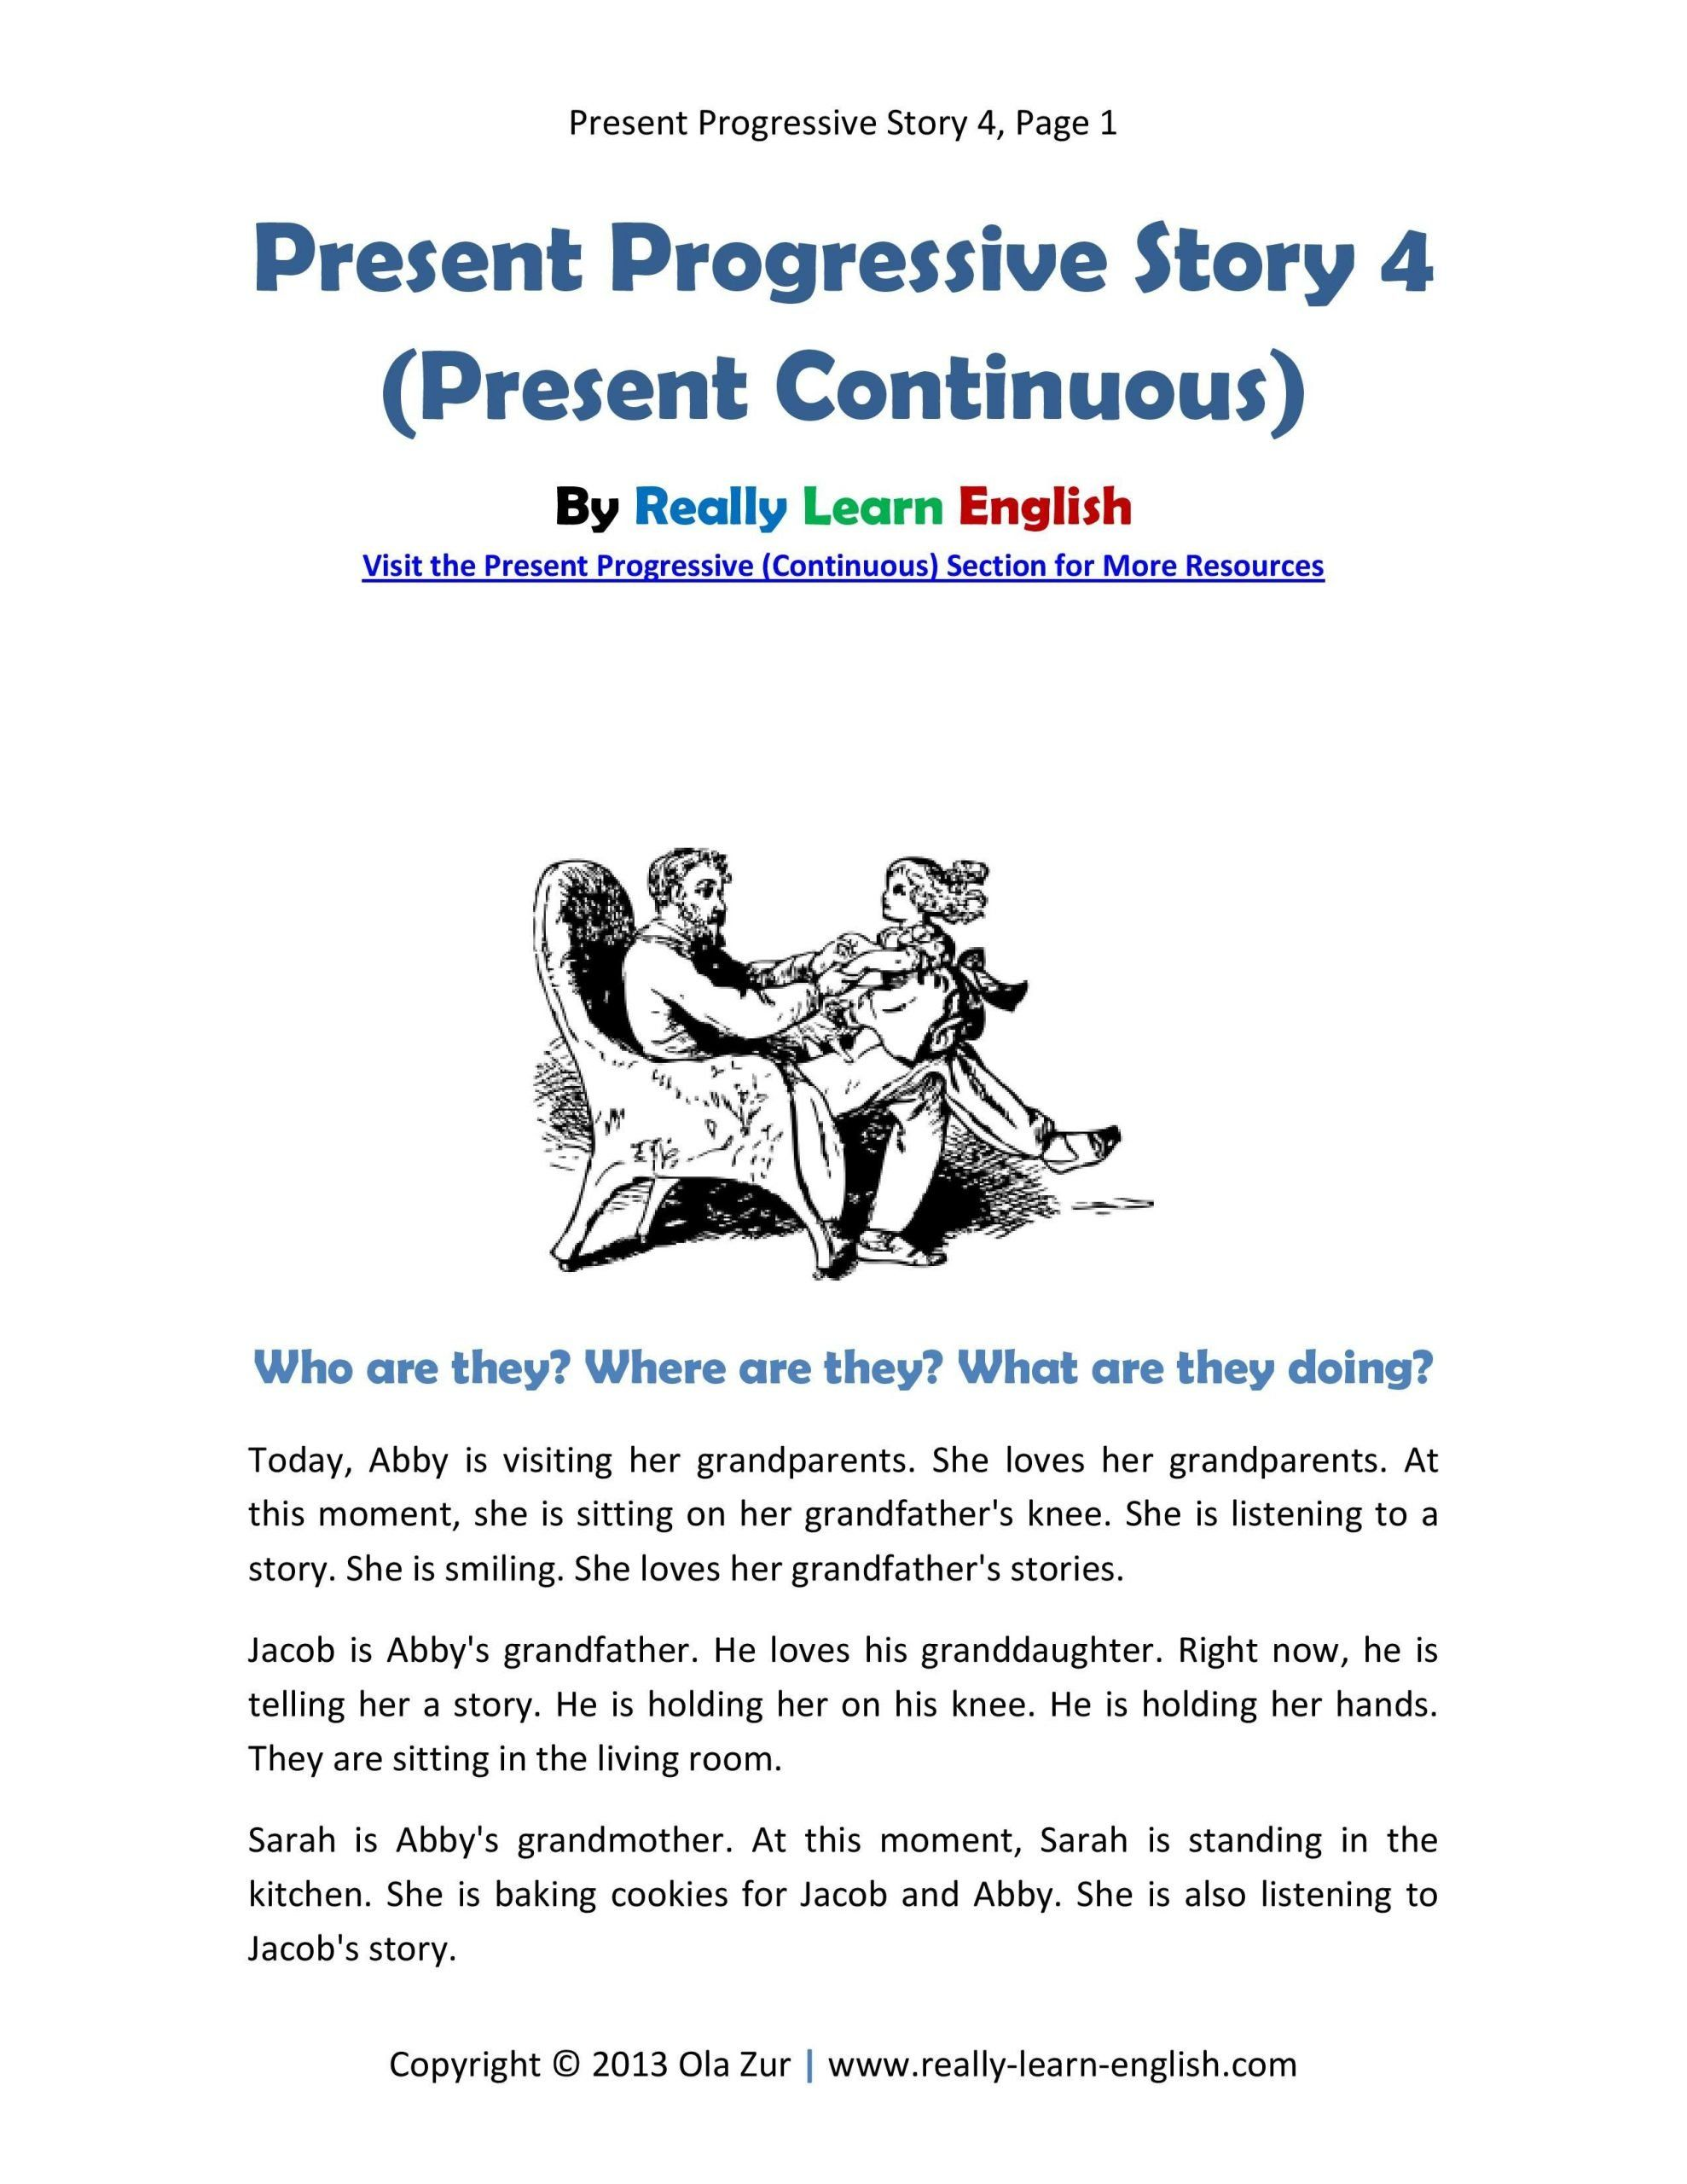 Present Progressive Spanish Worksheet Answers English Esl